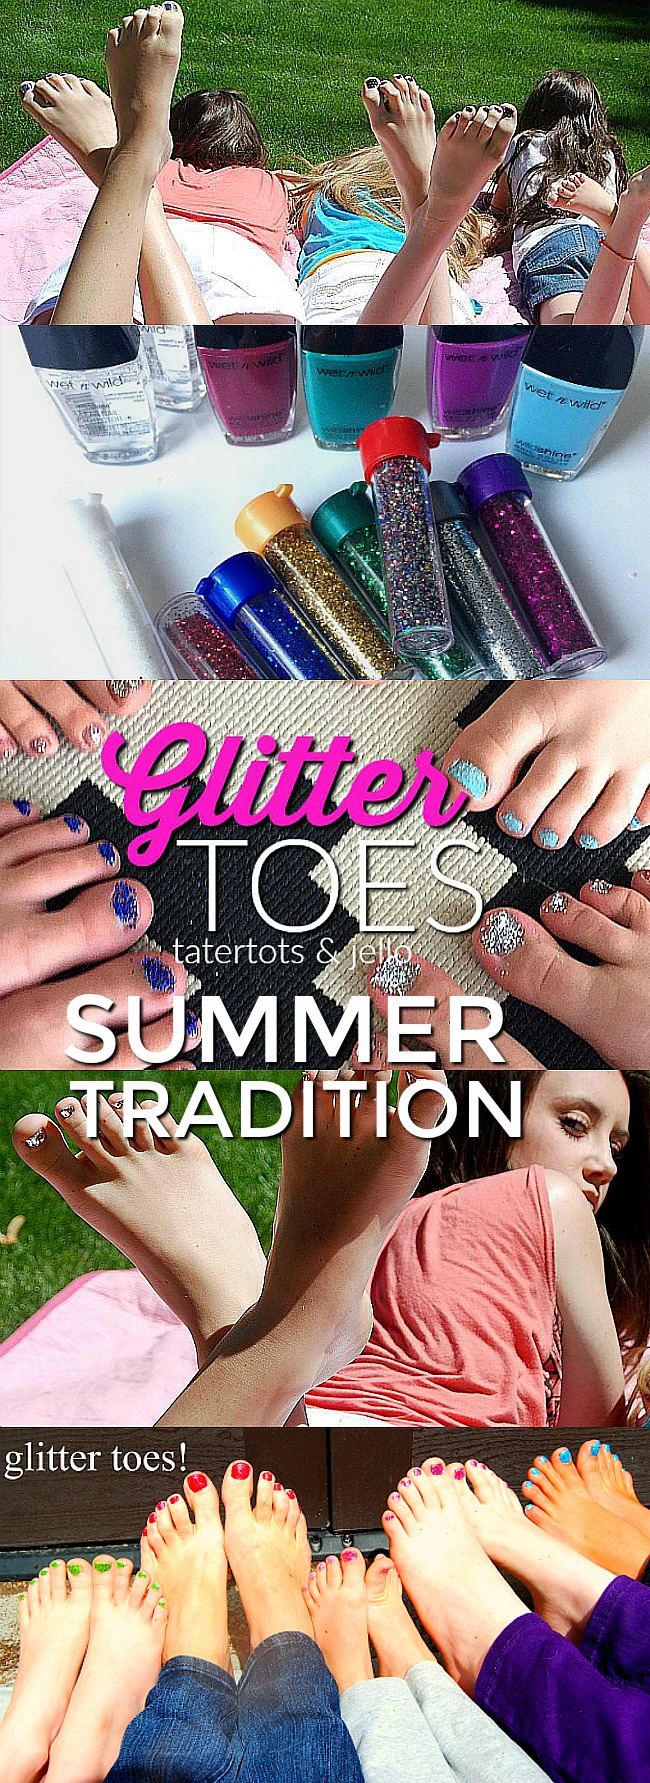 Glitter Toes Summer Tradition. Last Day of school tradition- glitter toes for summer tutorial!